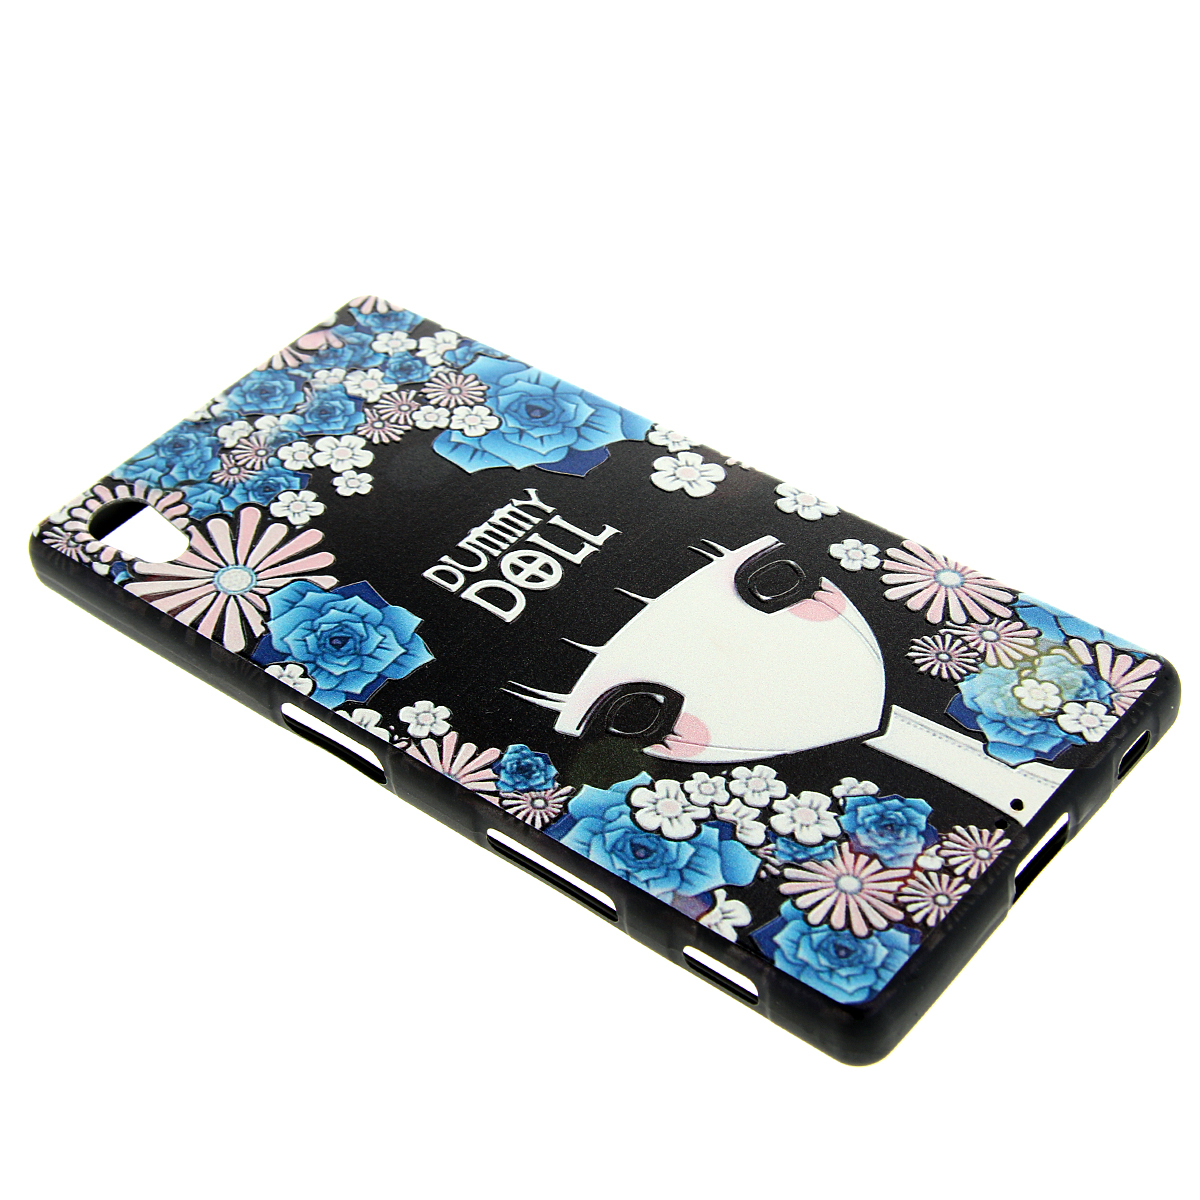 Moonmini PC Snap on Back Case for Lenovo A536 Multicolor 2 Source Moonmini .